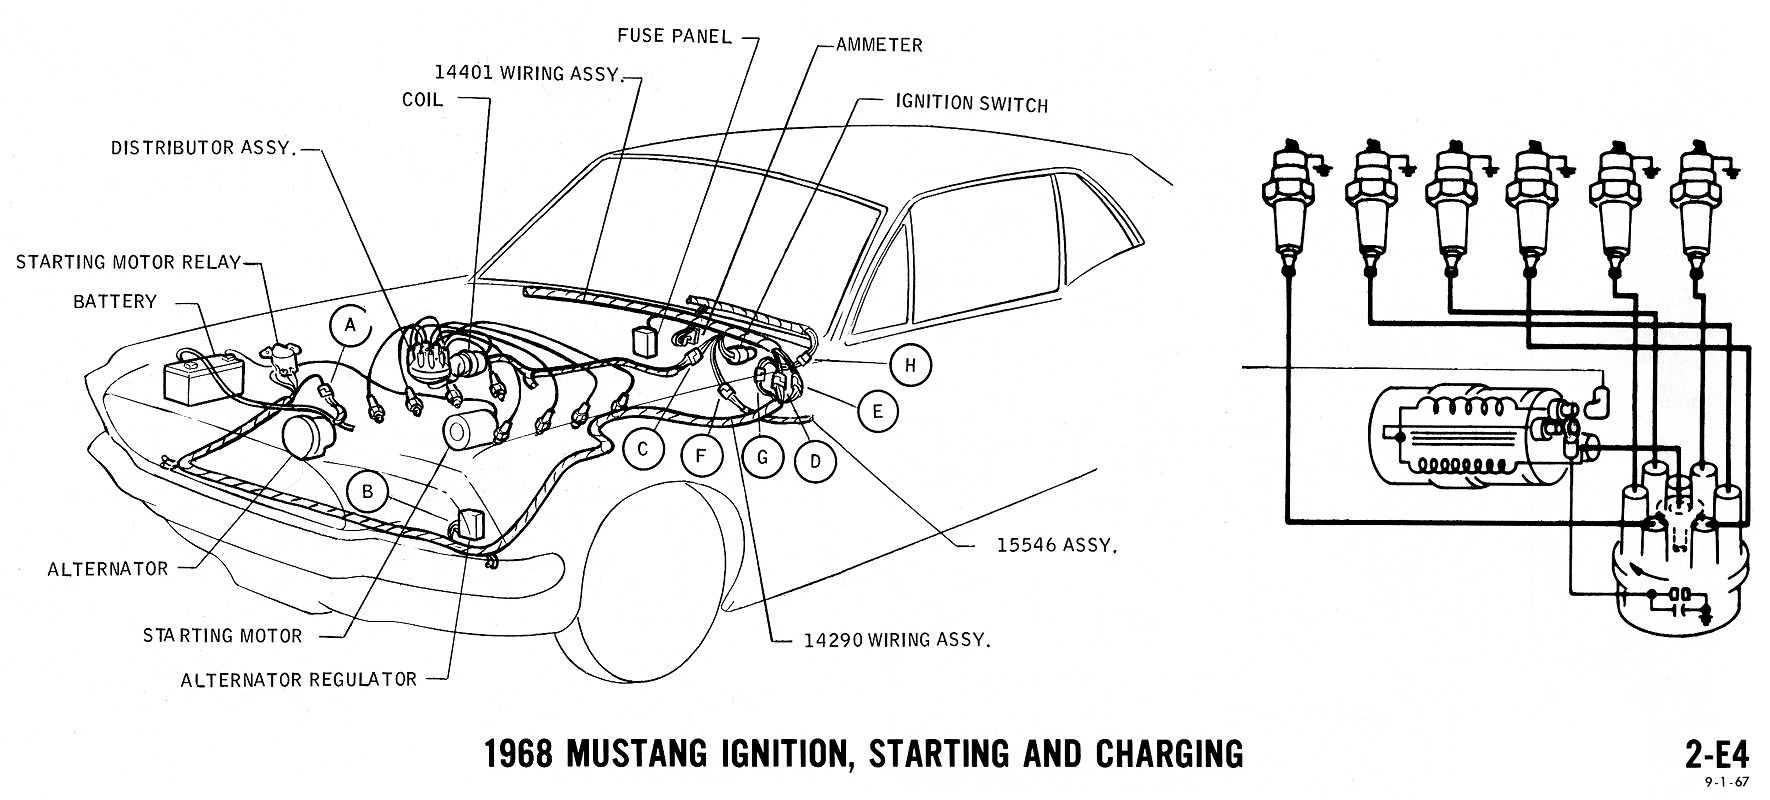 E4 1968 mustang wiring diagrams evolving software 1967 Mustang Wiring Schematic at alyssarenee.co